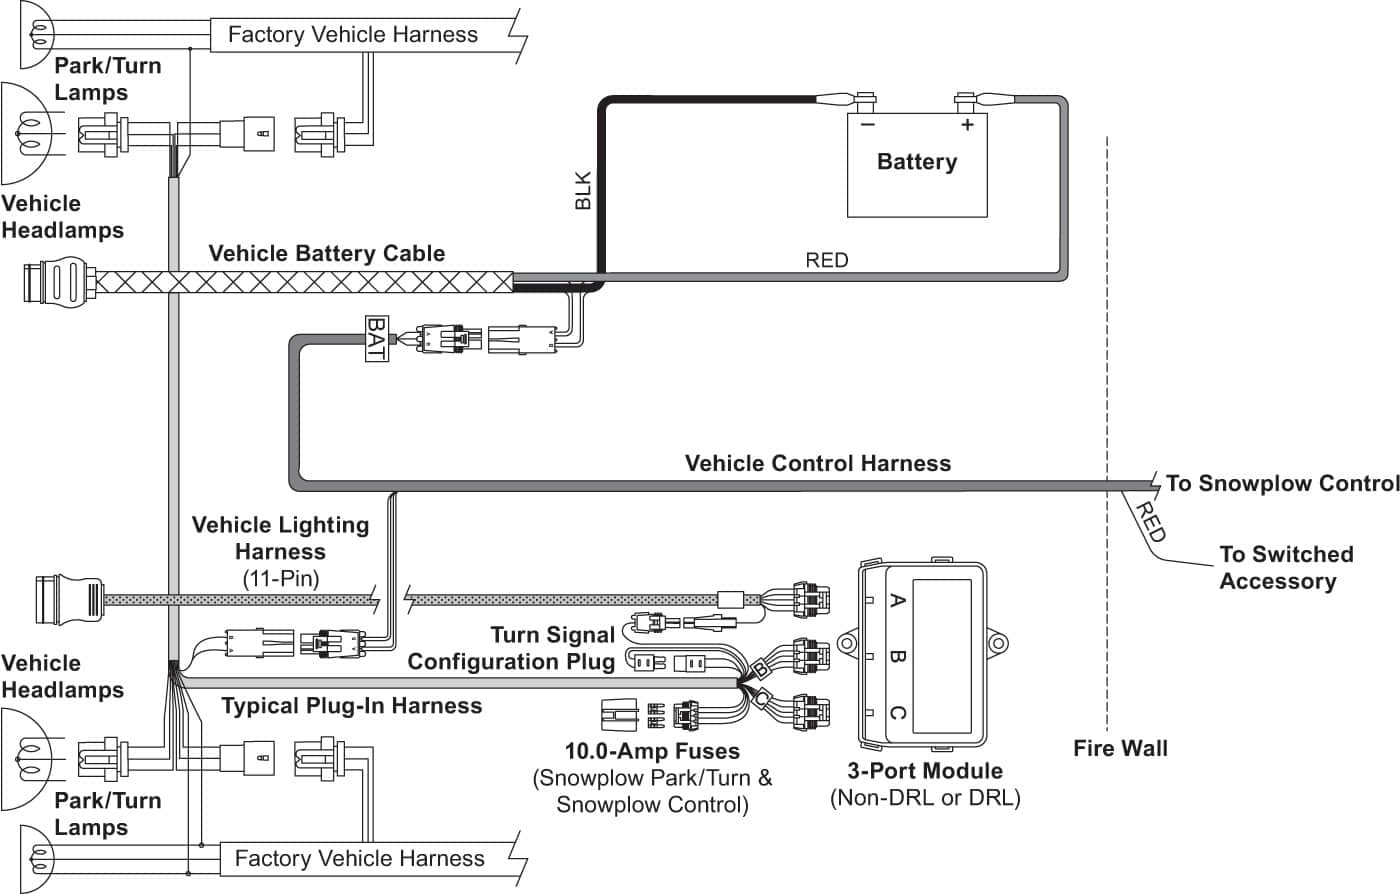 western snow plow wiring diagram Download-Western Snow Plow Controller Wiring Diagram Download snow plow wiring diagram Luxury Fantastic Western Unimount 11-f